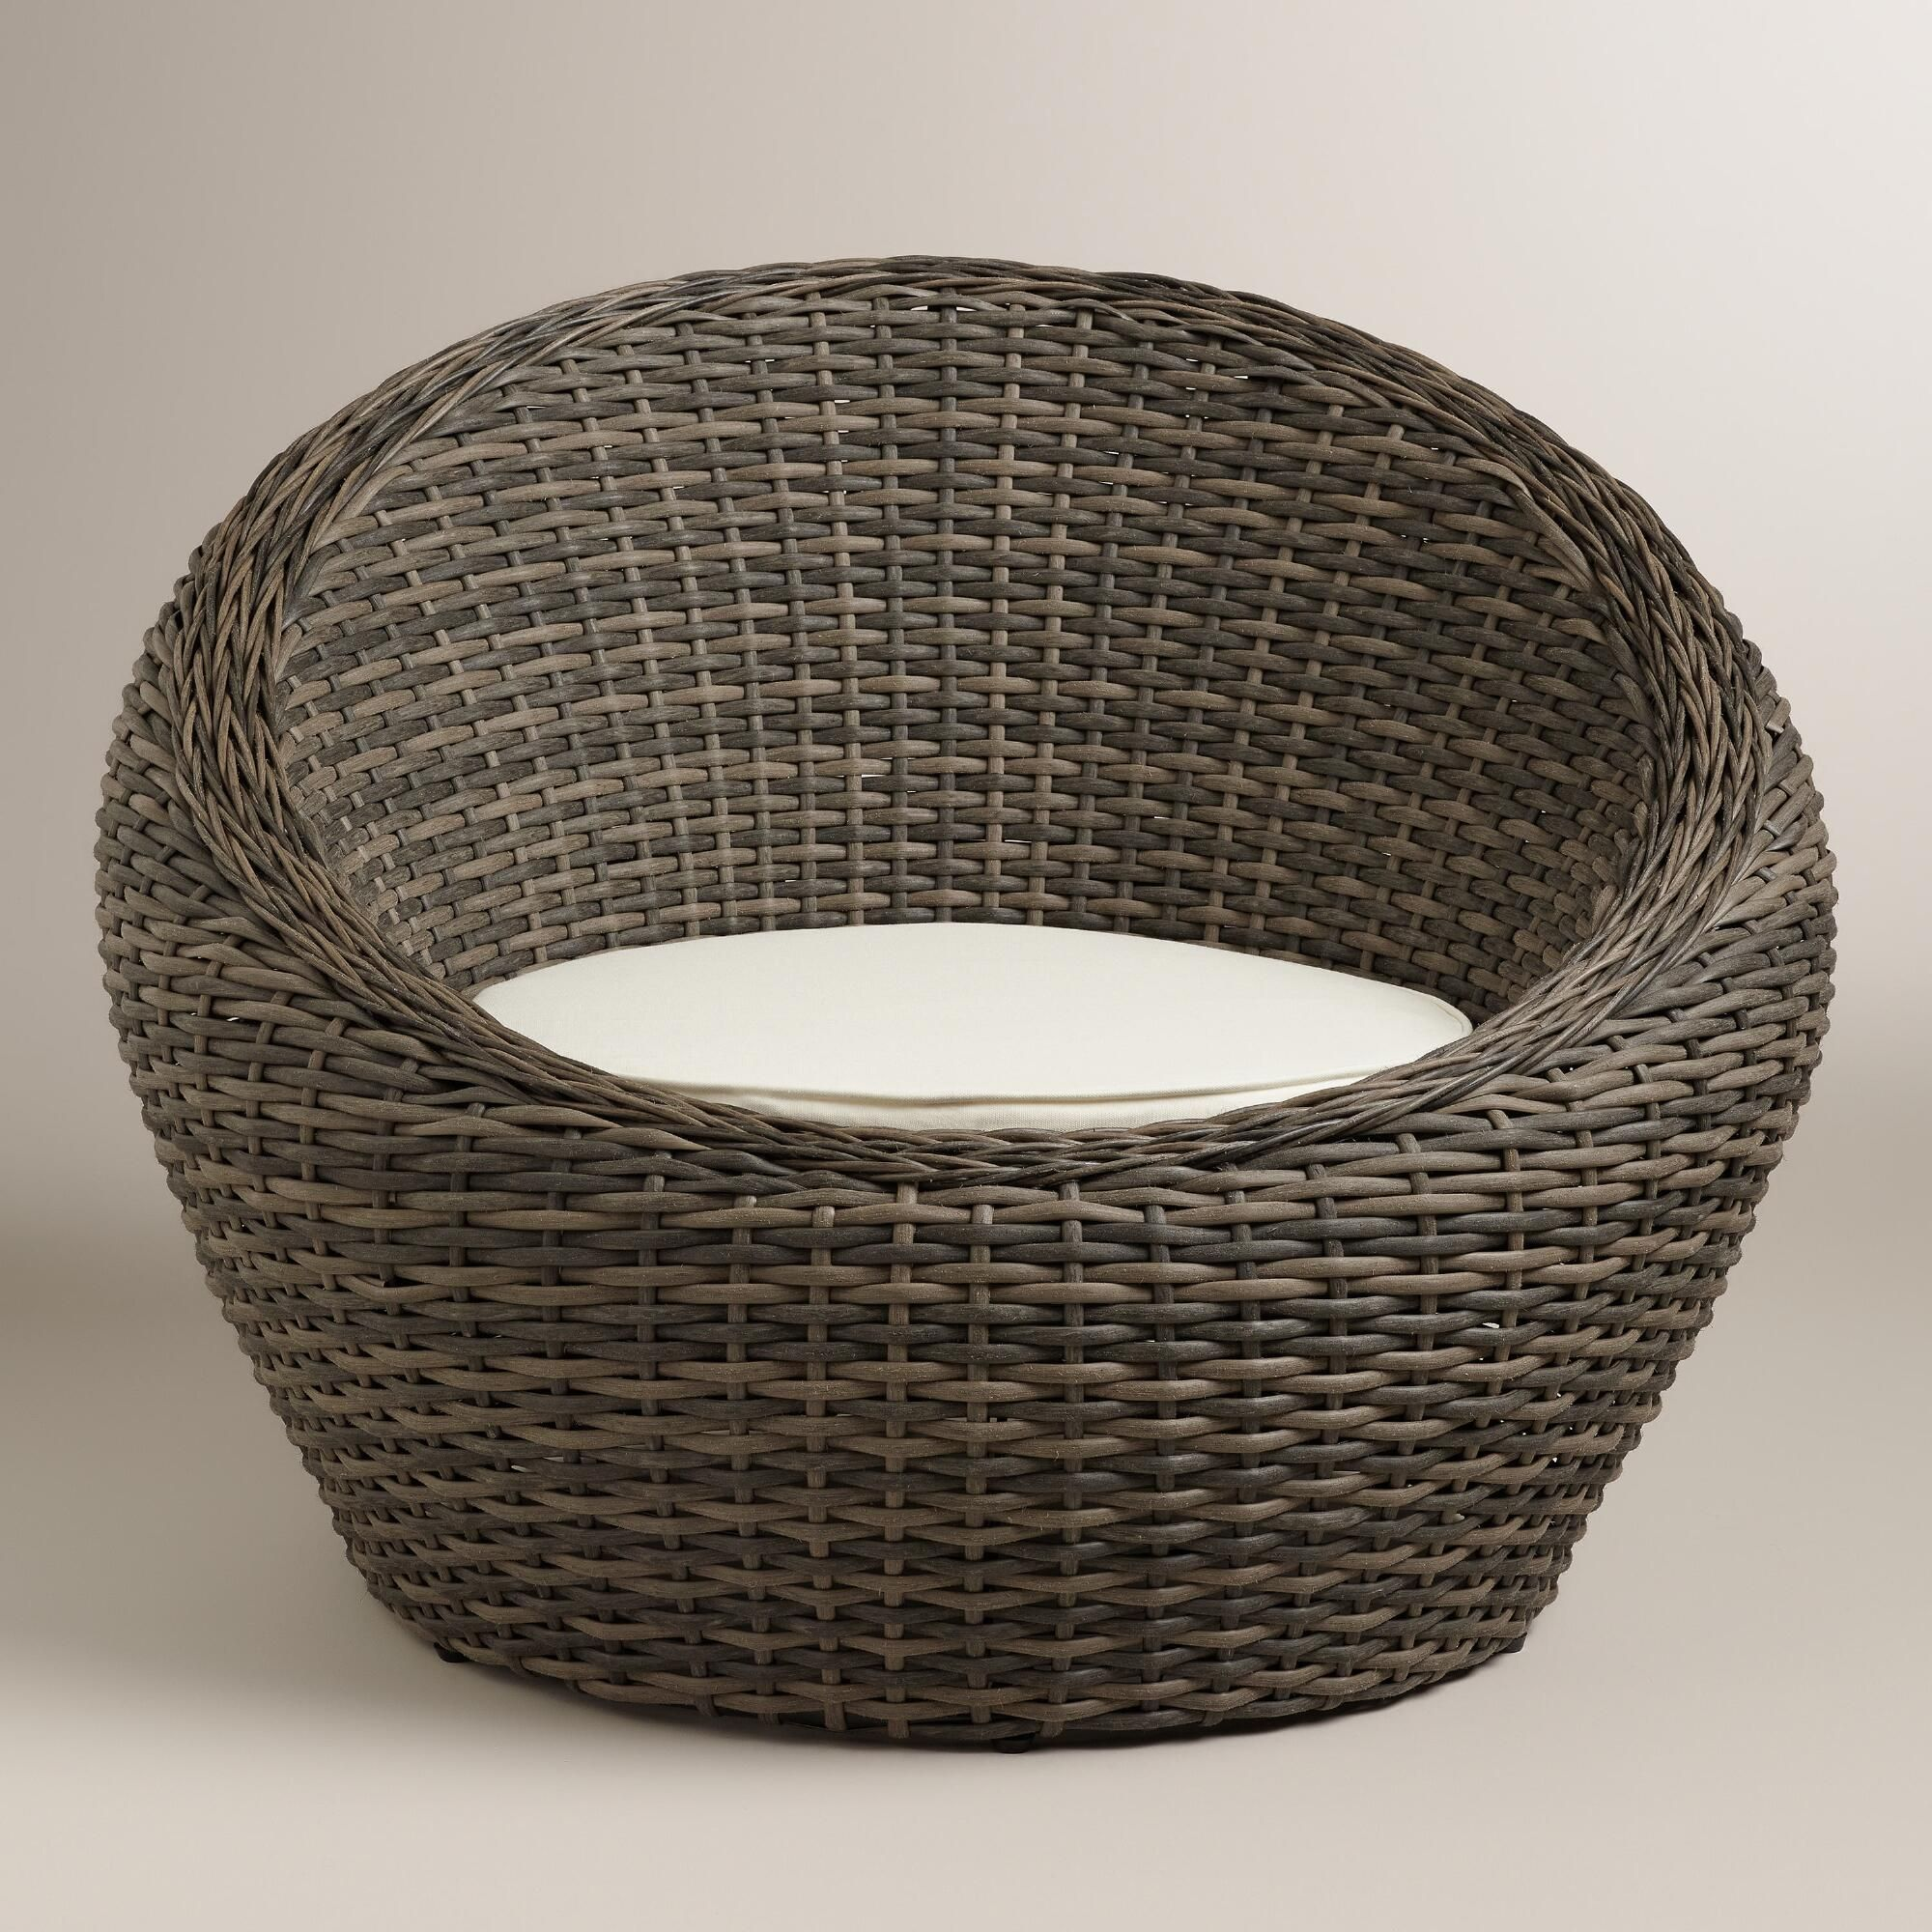 AllWeather Wicker Formentera Egg Outdoor Chair Outdoor